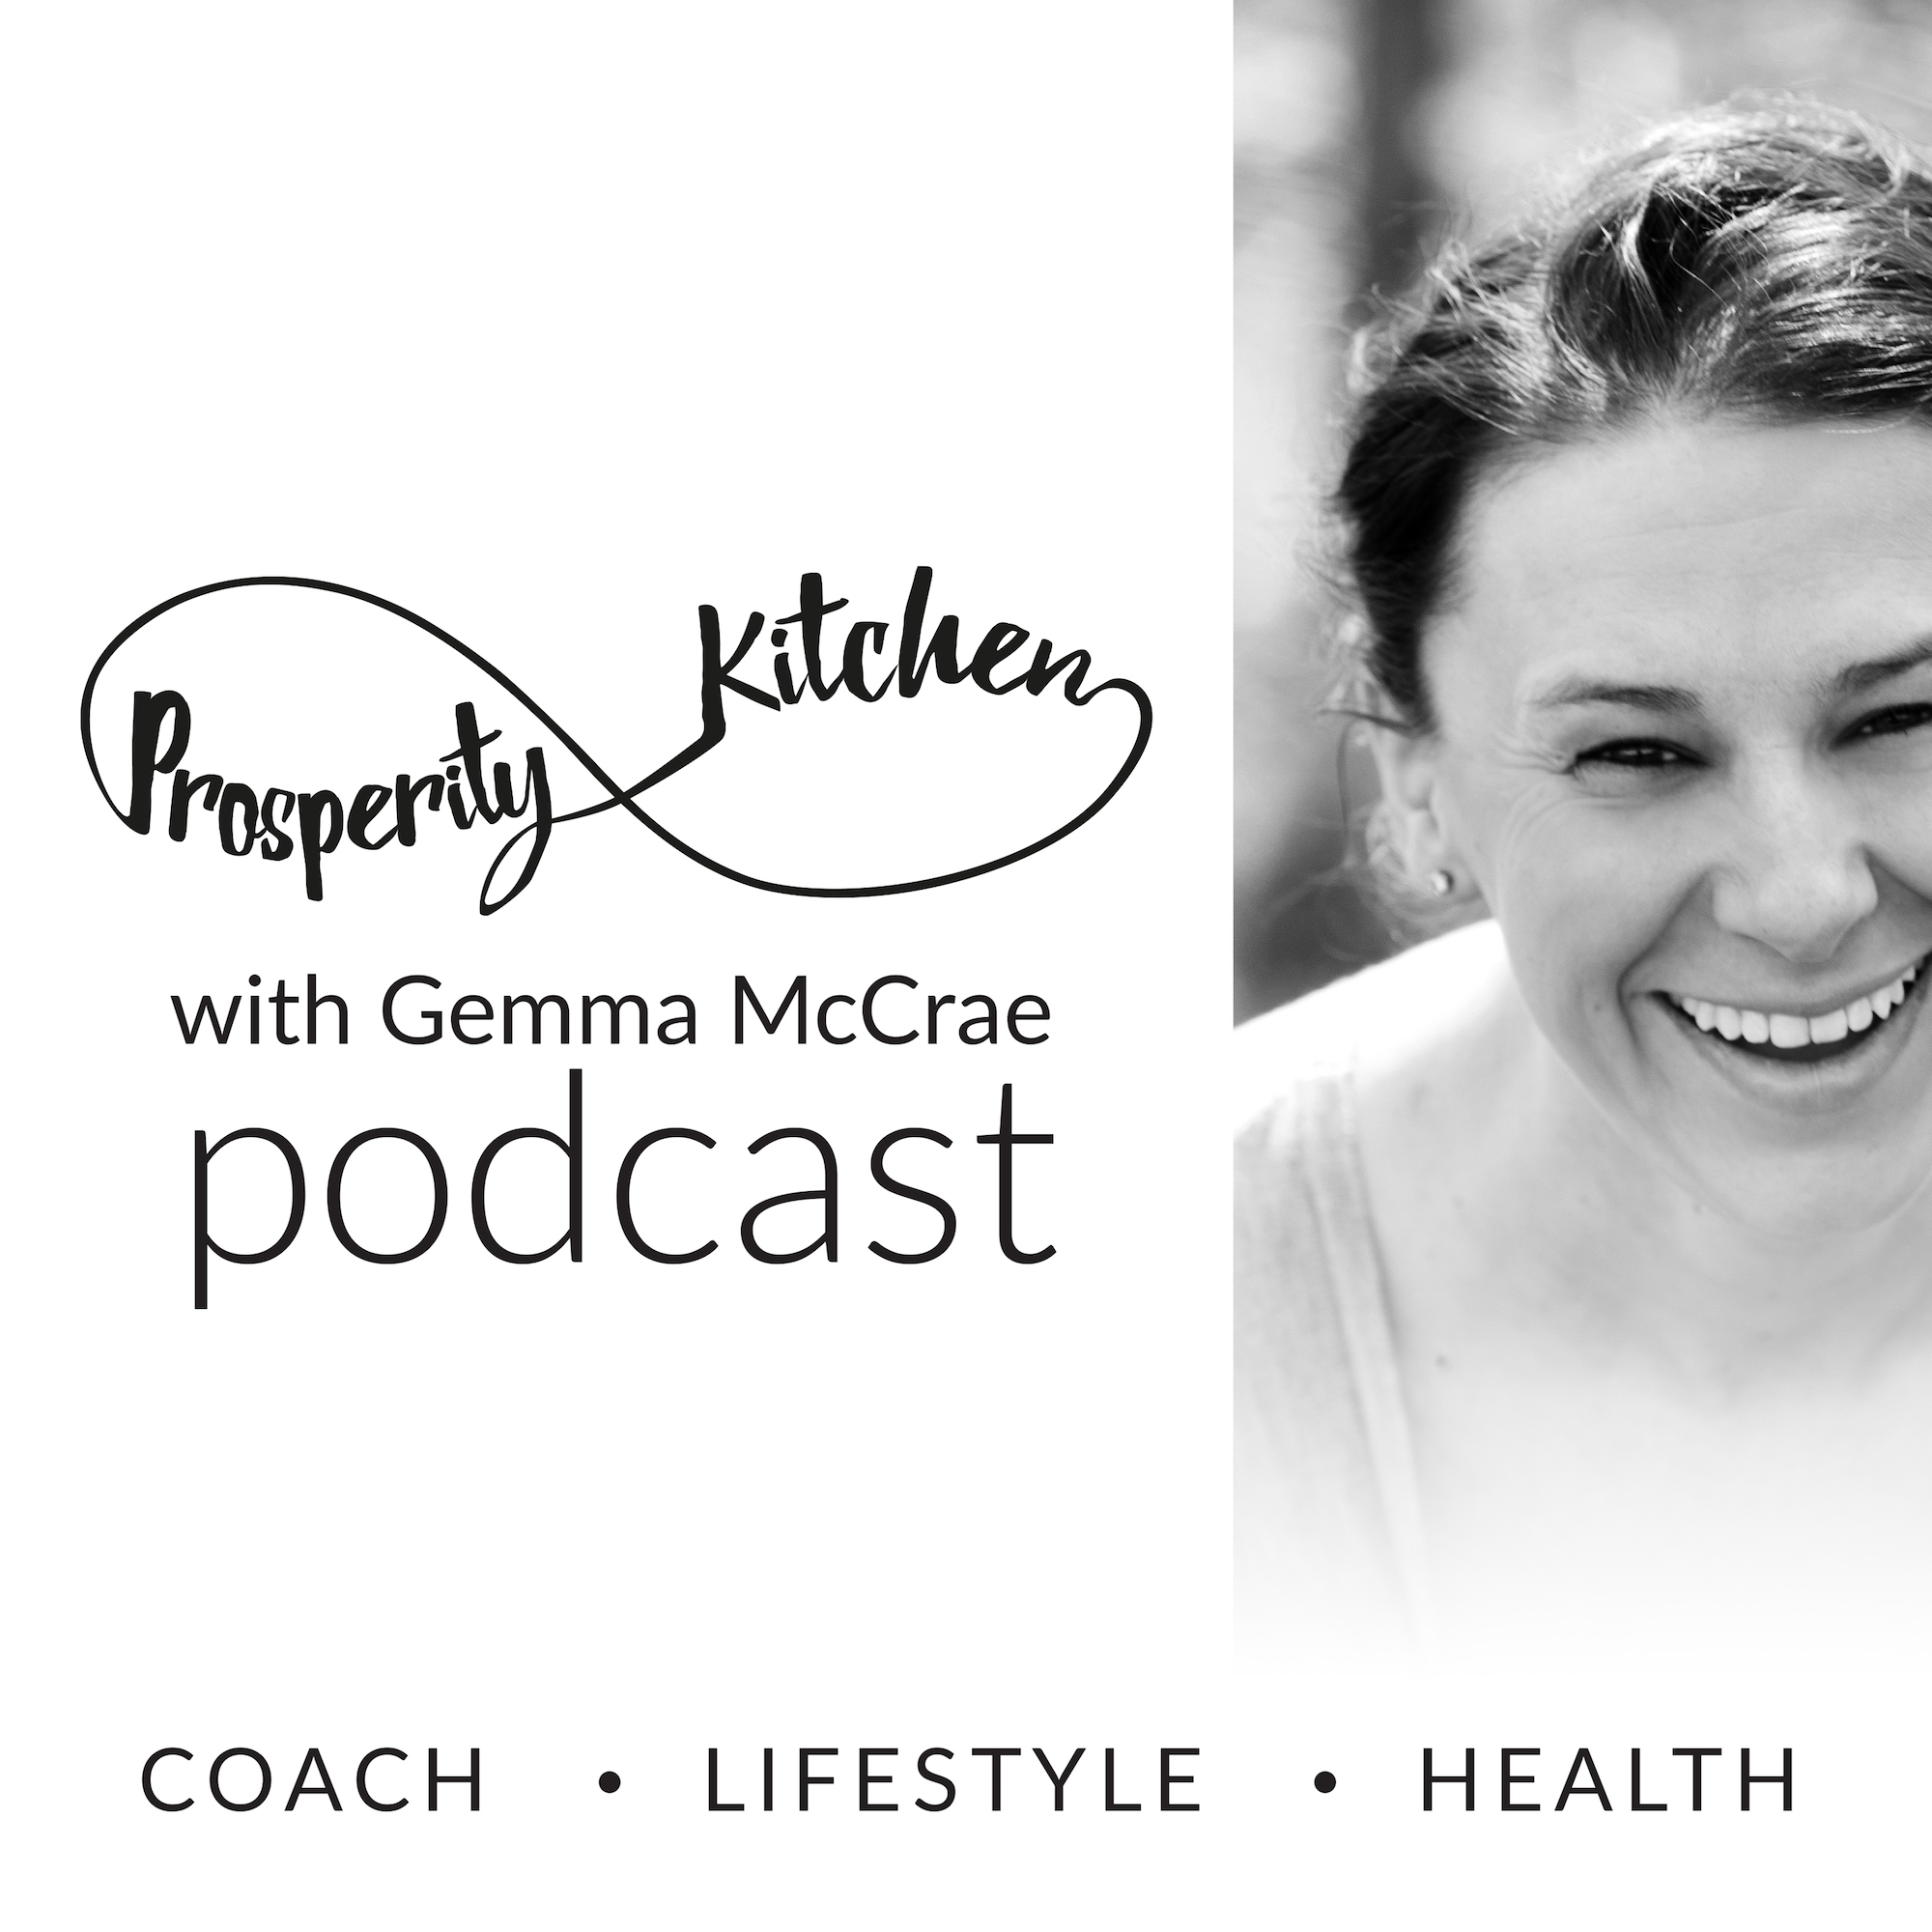 Prosperity Kitchen Podcast with Gemma McCrae show art